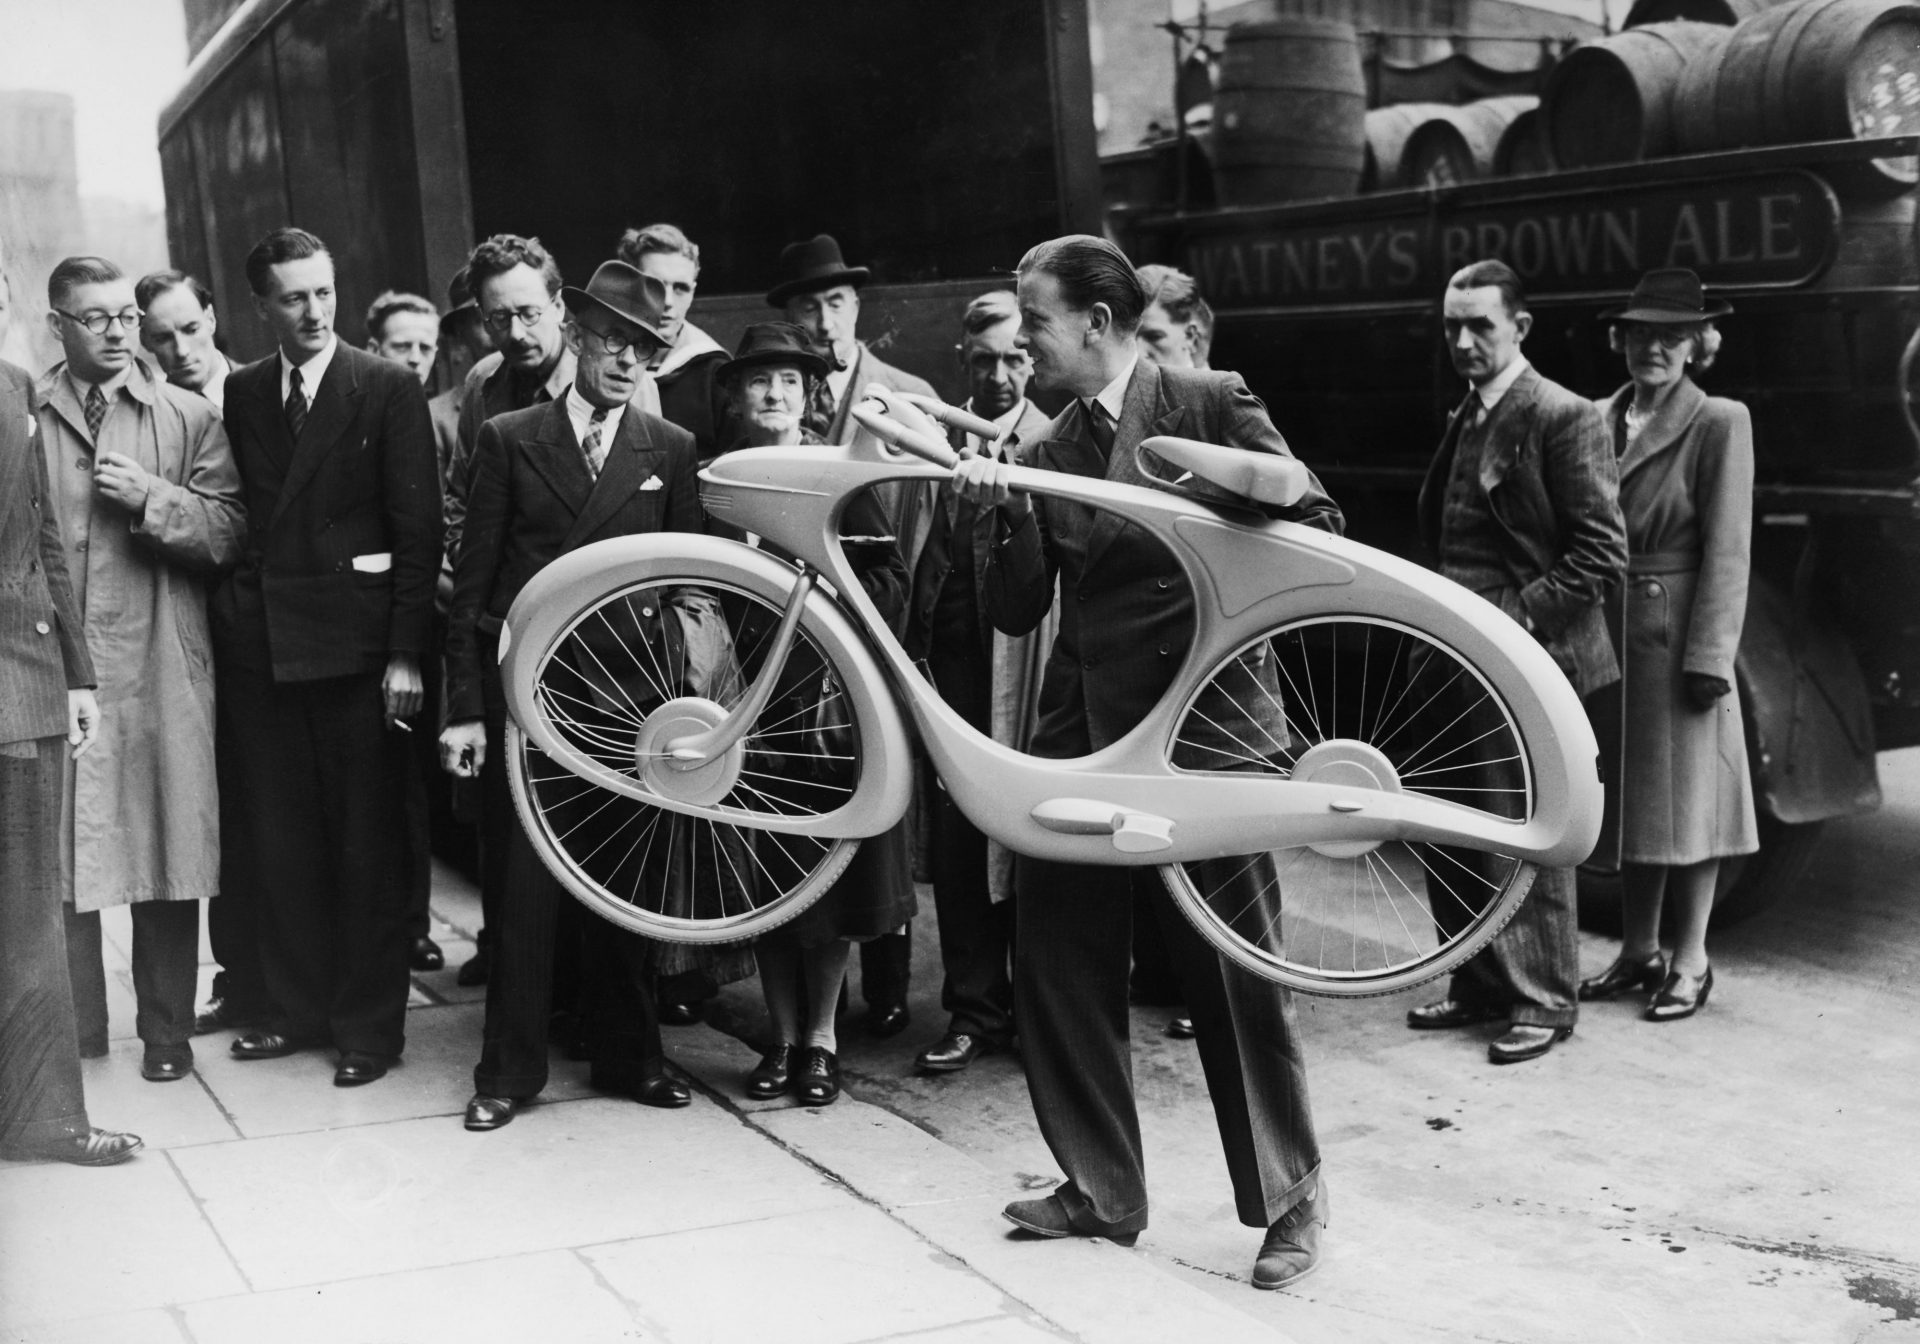 Designer B.G. Bowden with his 'Streamline' cycle, exhibited at the Britain Can Make It show. Features included a hub dynamo/motor, which stored energy while the bicycle was travelling downhill and released it on uphill gradients, as well as a radio. Credit: J. A. Hampton/Getty